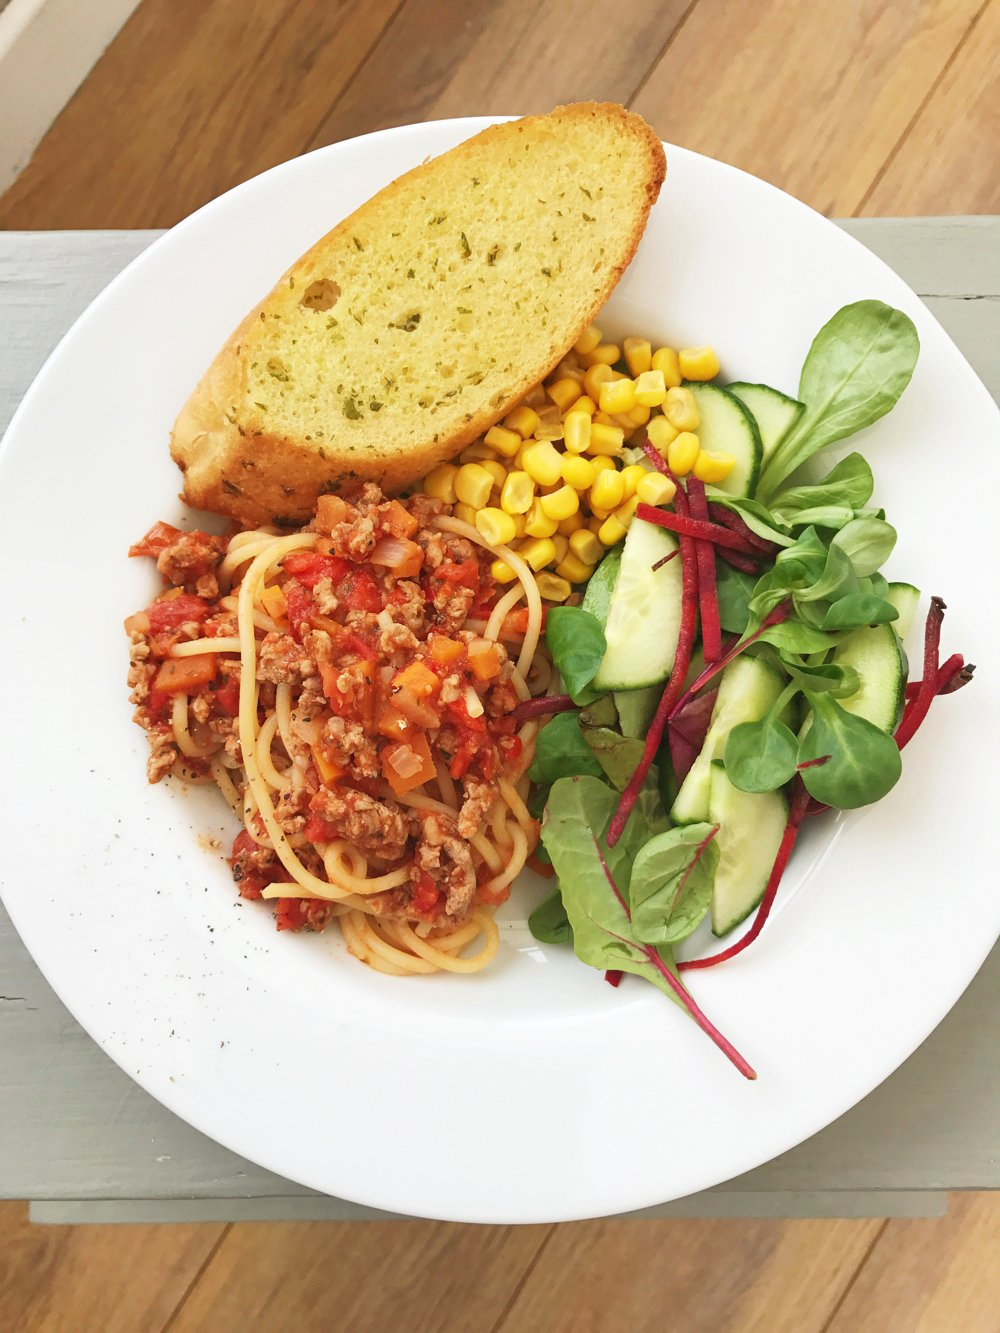 plateful of homemade turkey bolognese served with garlic bread, salad and sweetcorn